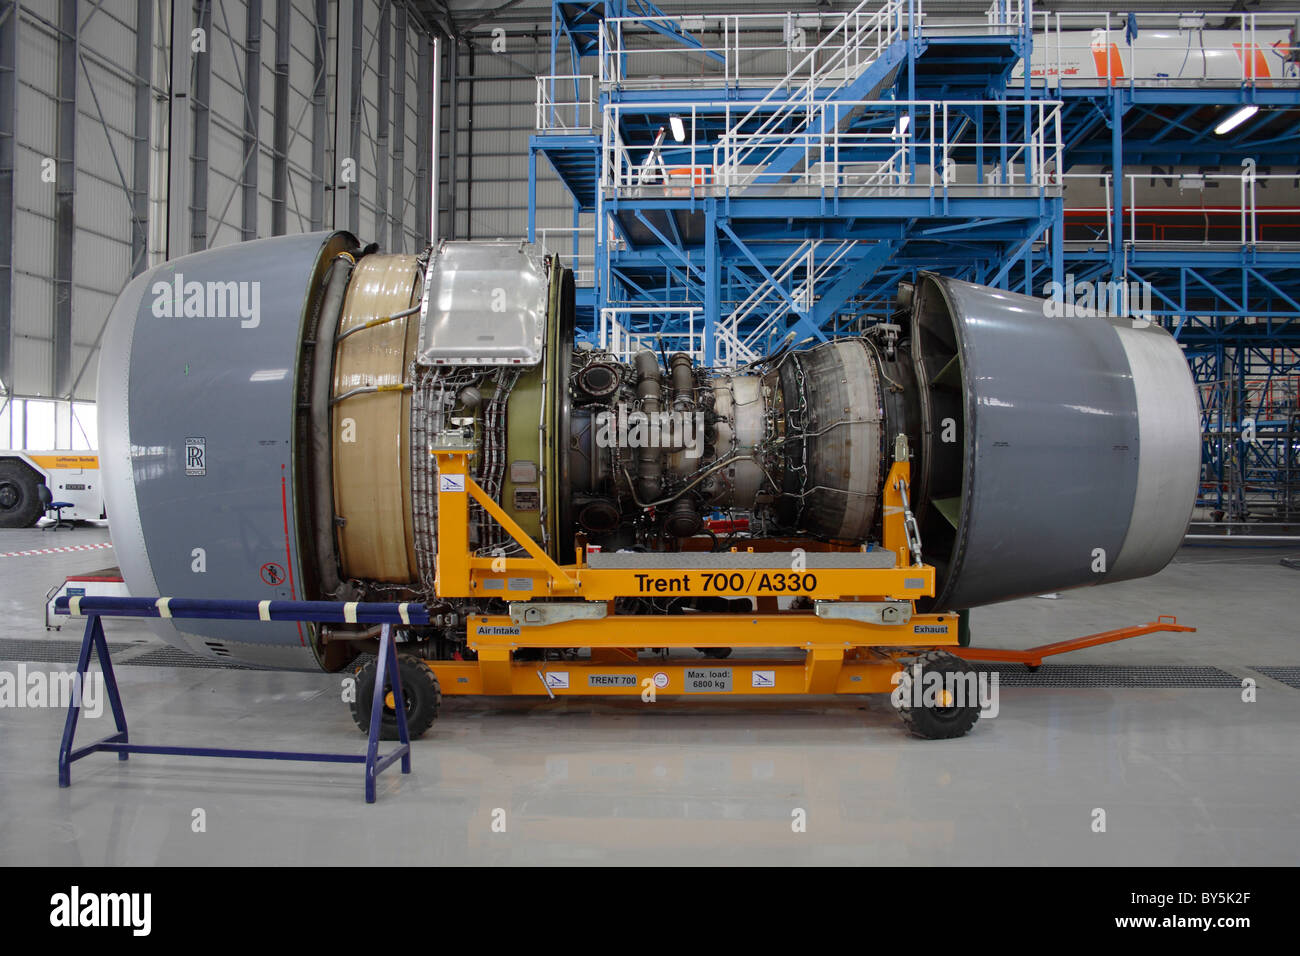 Rolls-Royce Trent 700 turbofan jet engine partially dismantled and undergoing maintenance - Stock Image